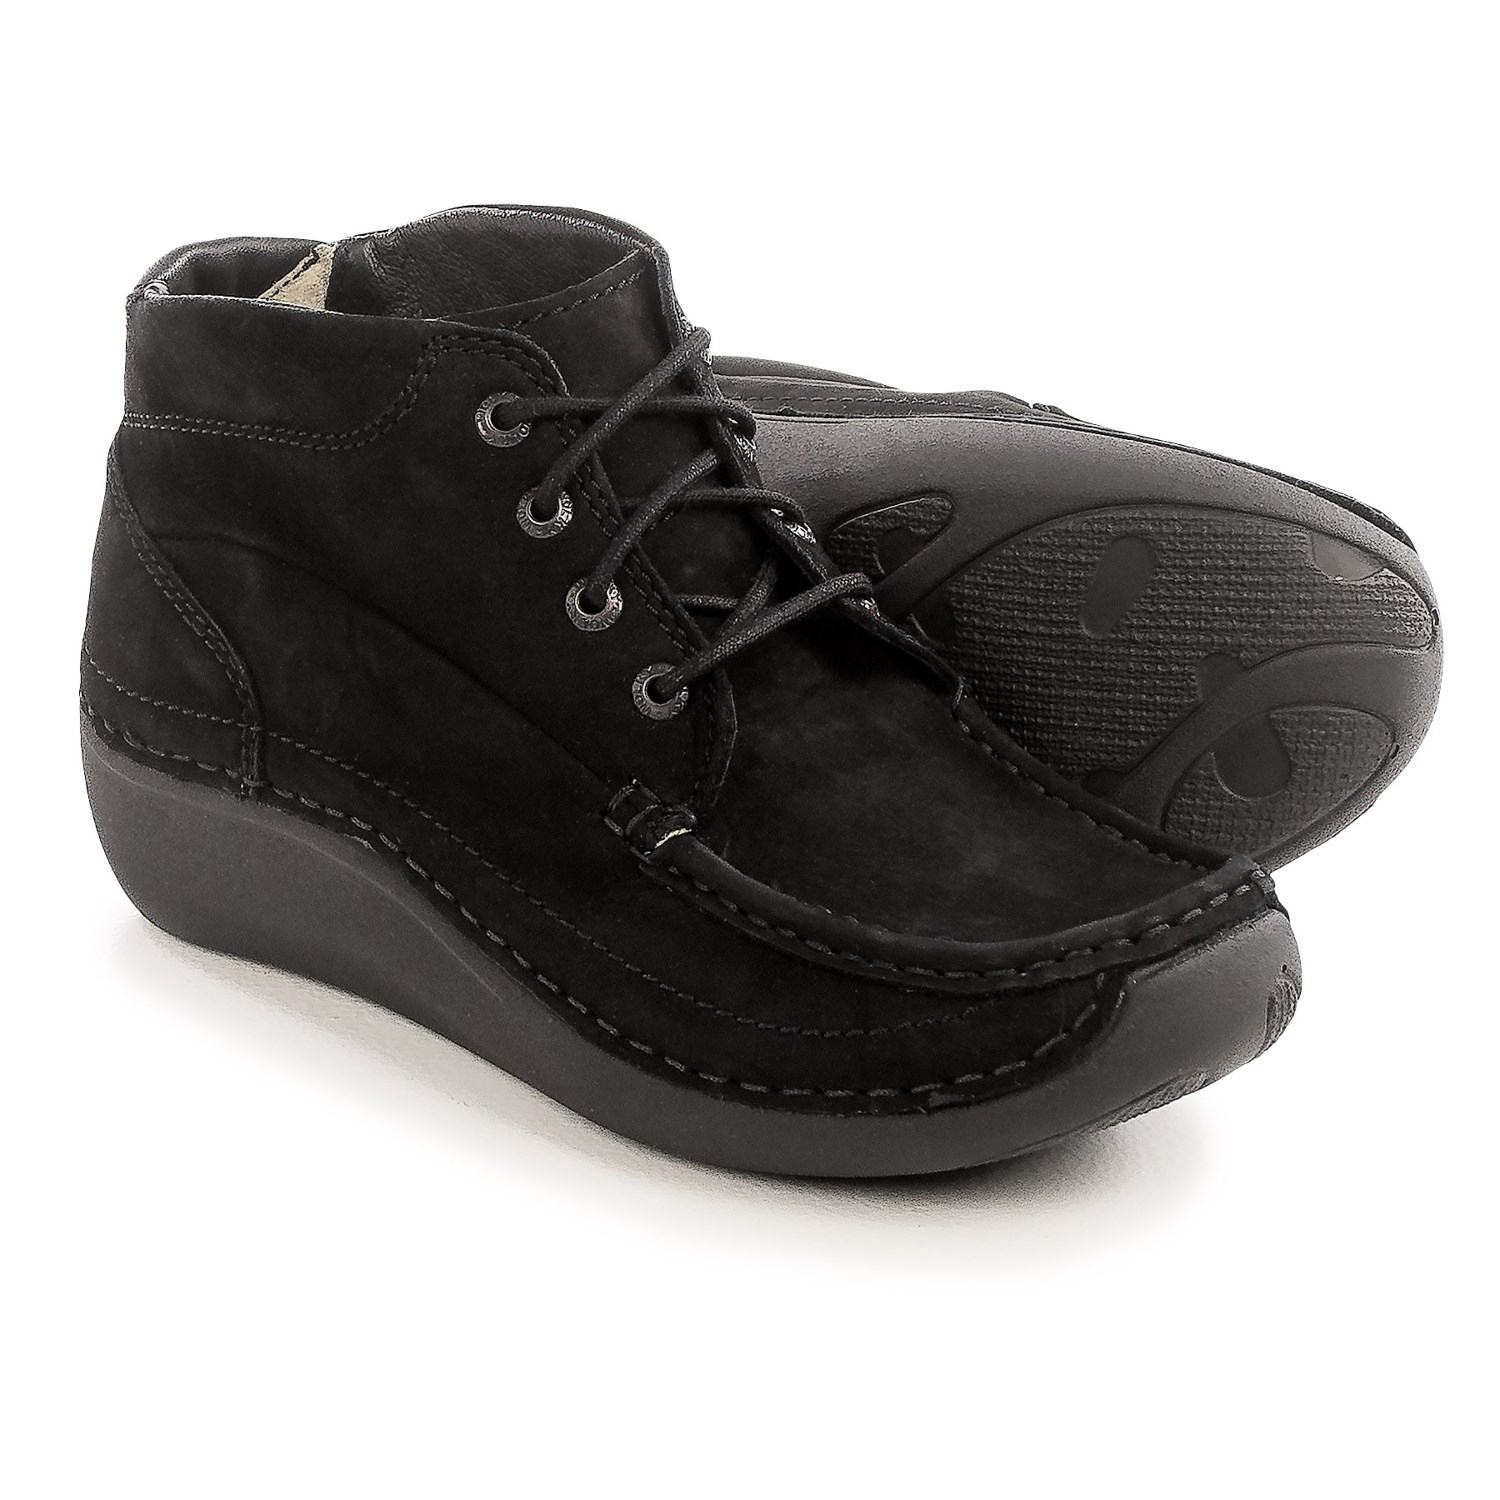 wolky ankle boots for save 33